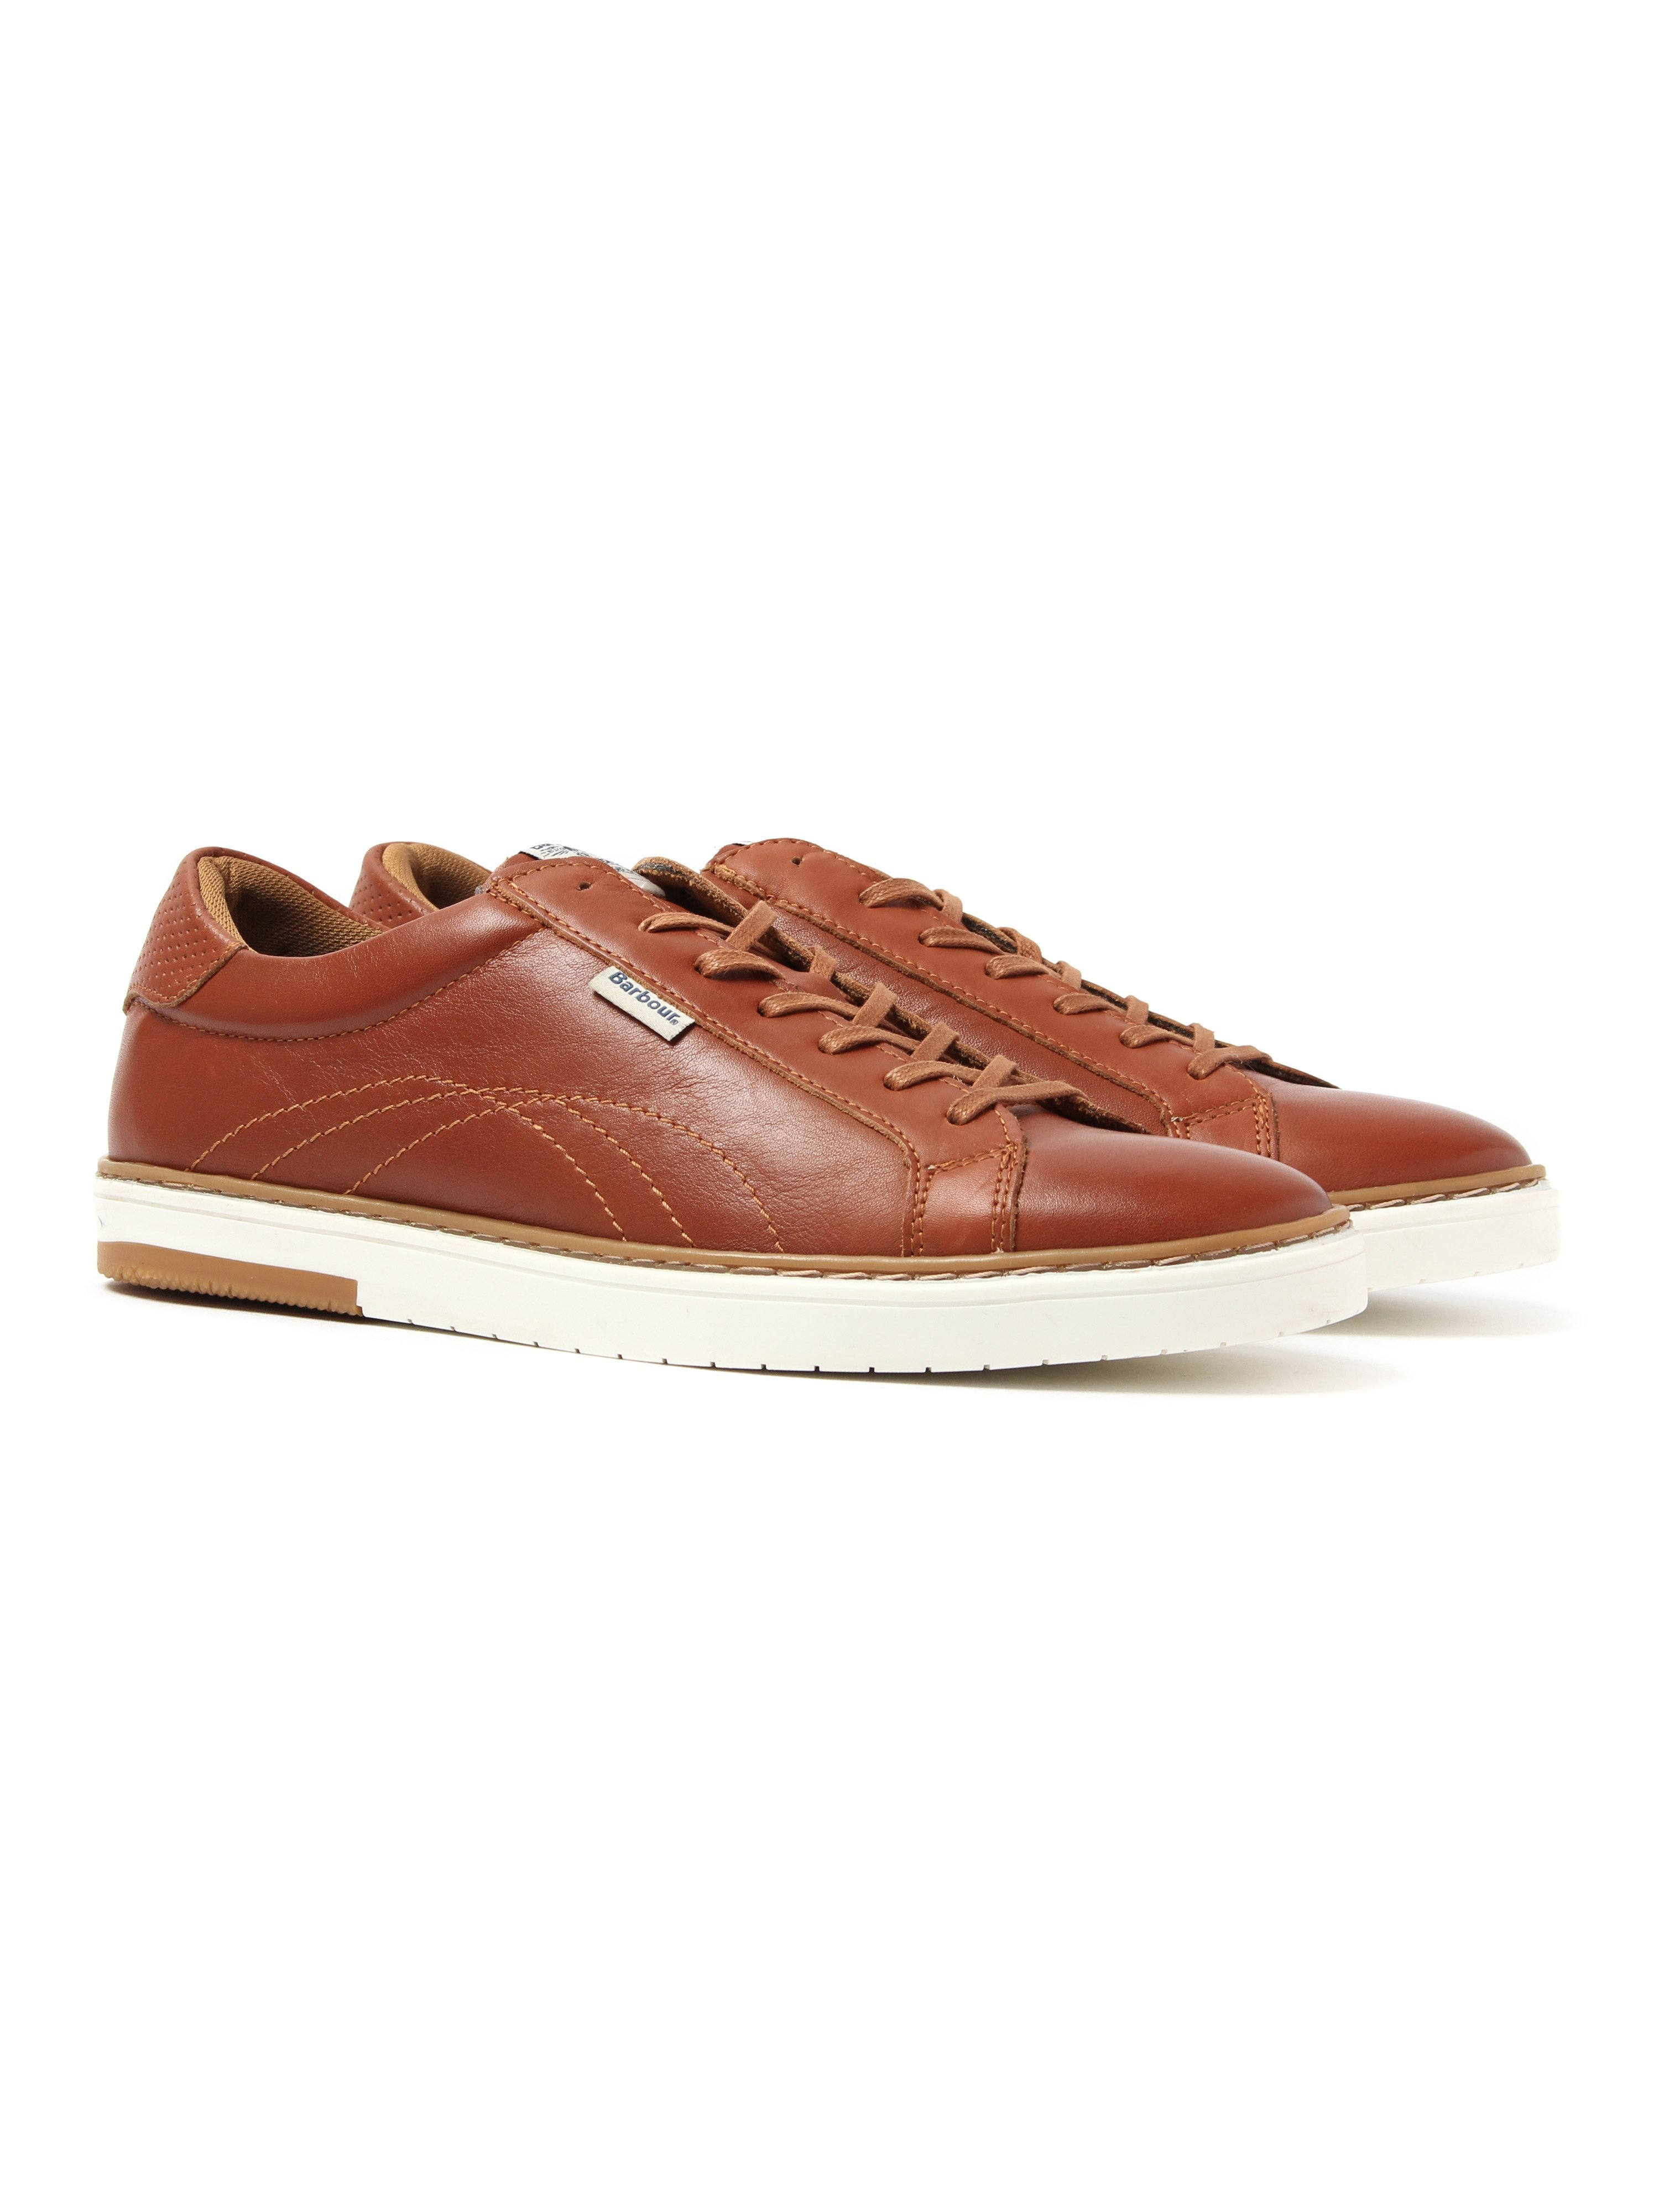 Barbour Men's Howdon Leather Trainers - Tan